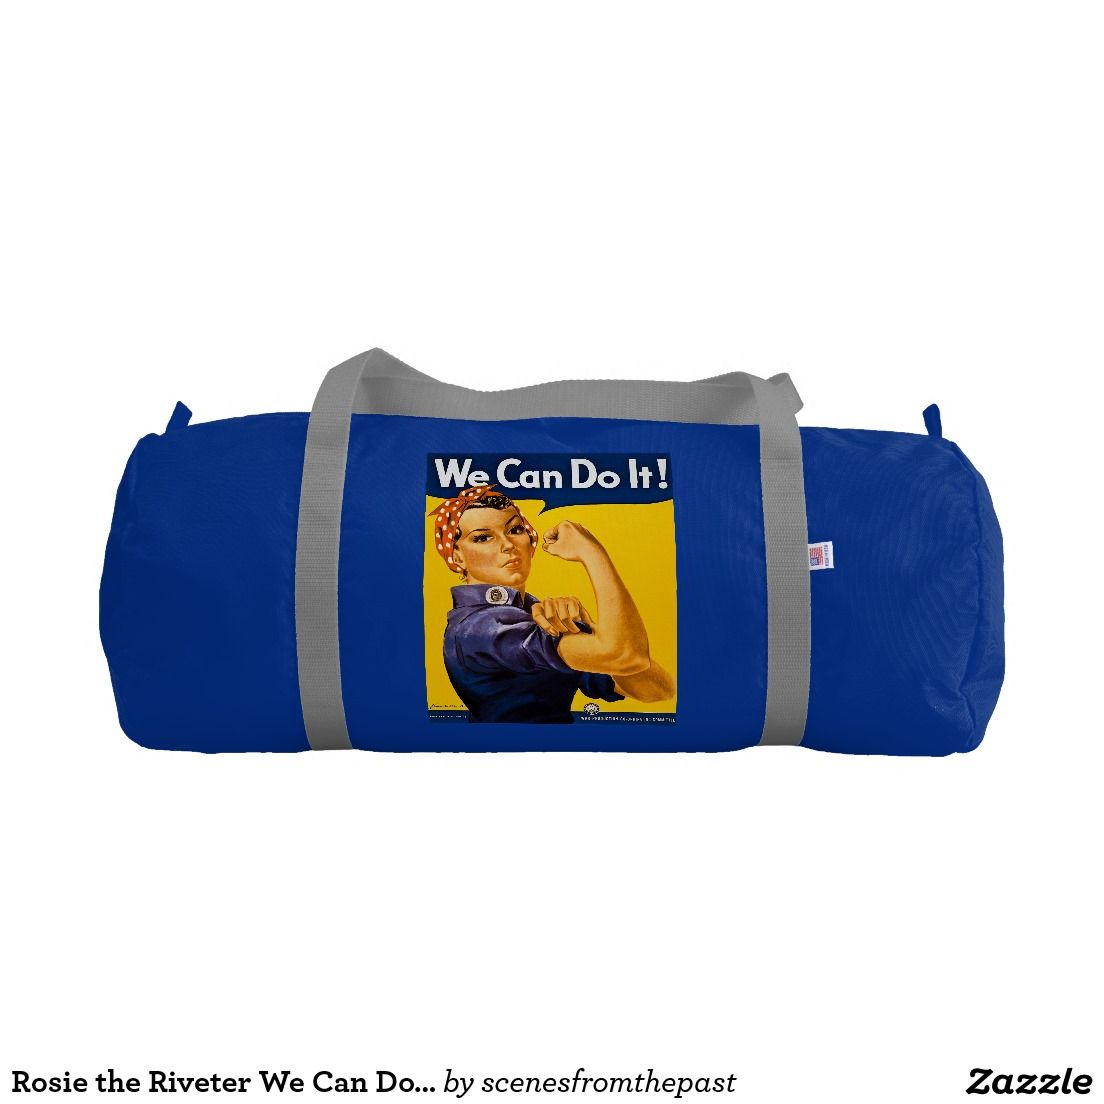 Rosie the Riveter We Can Do It Retro Vintage Gym Duffel Bag